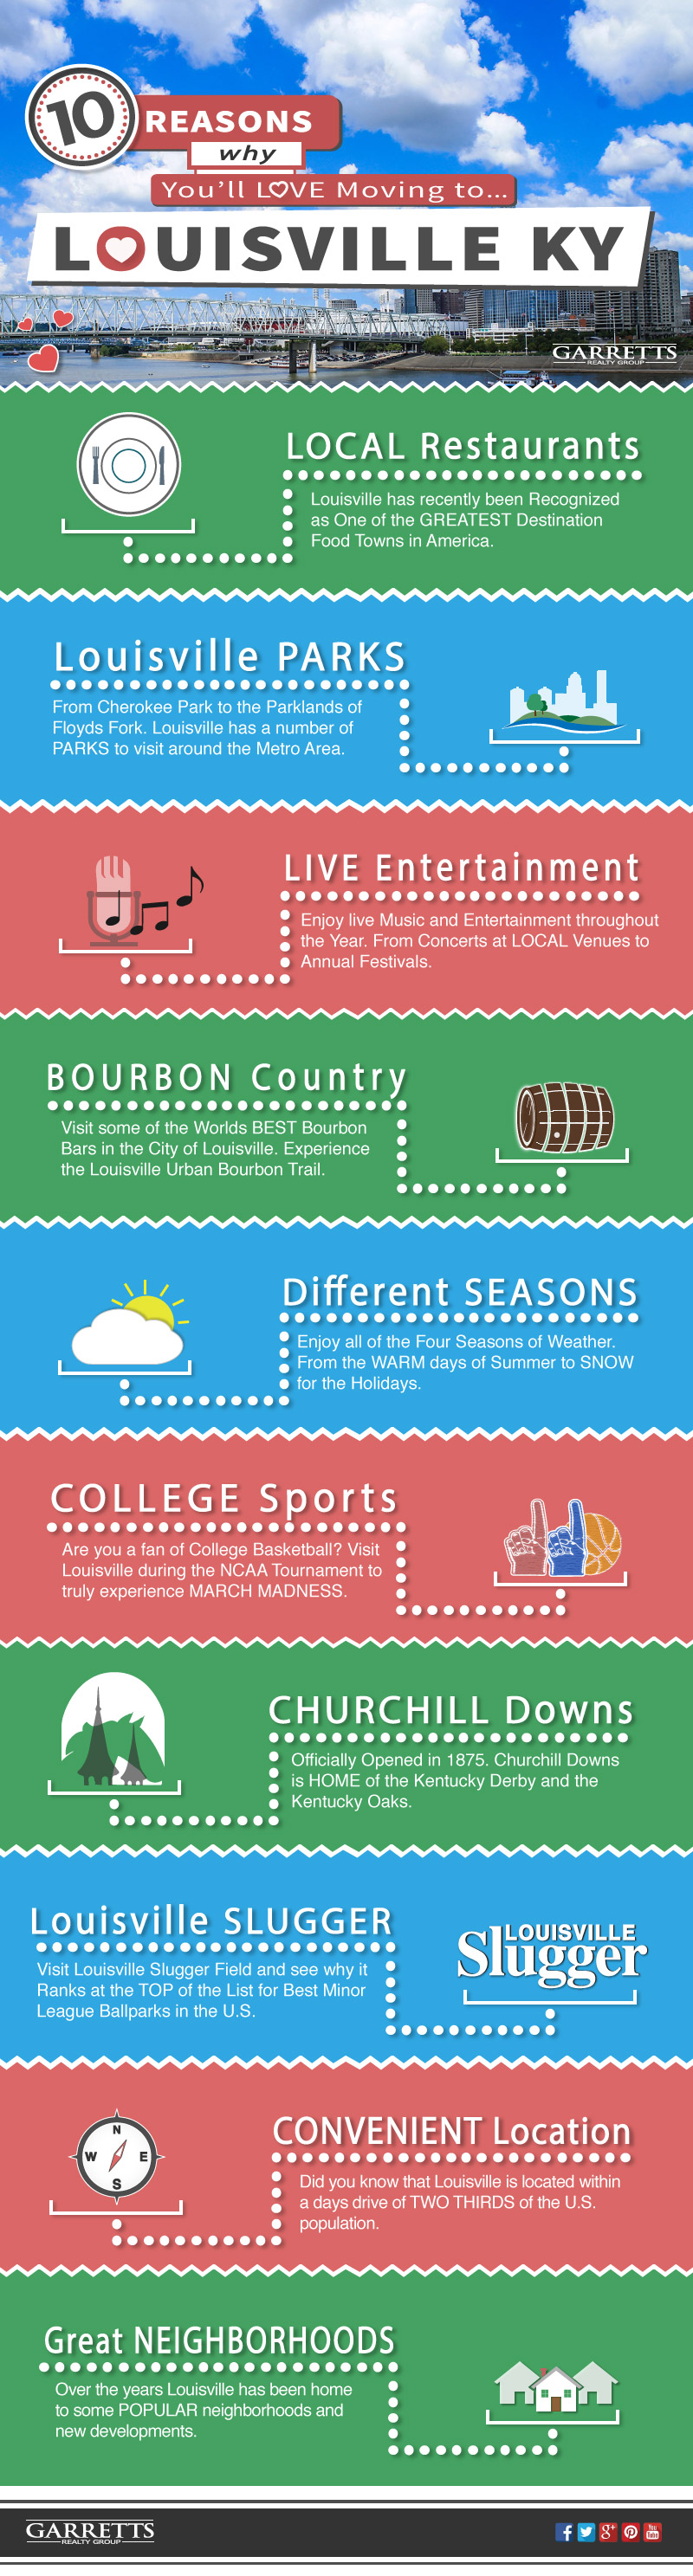 Moving to Louisville. Top things to do in the City Infographic